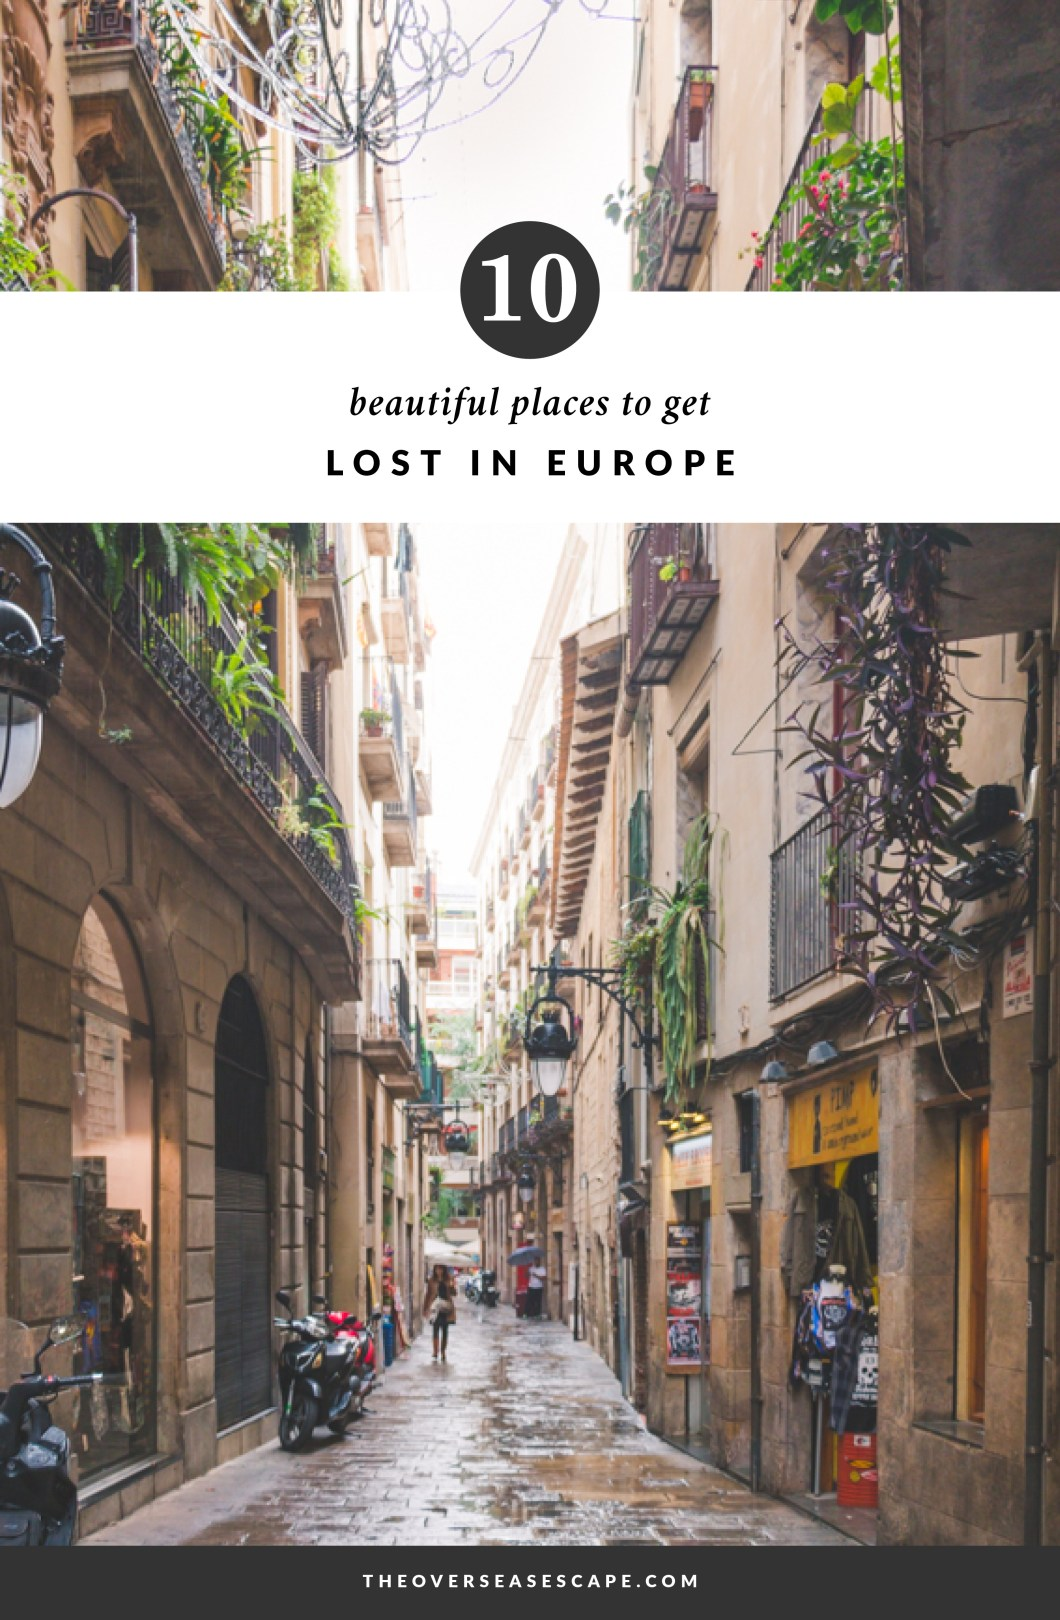 10 Beautiful Places to Get Lost in Europe - The Overseas Escape